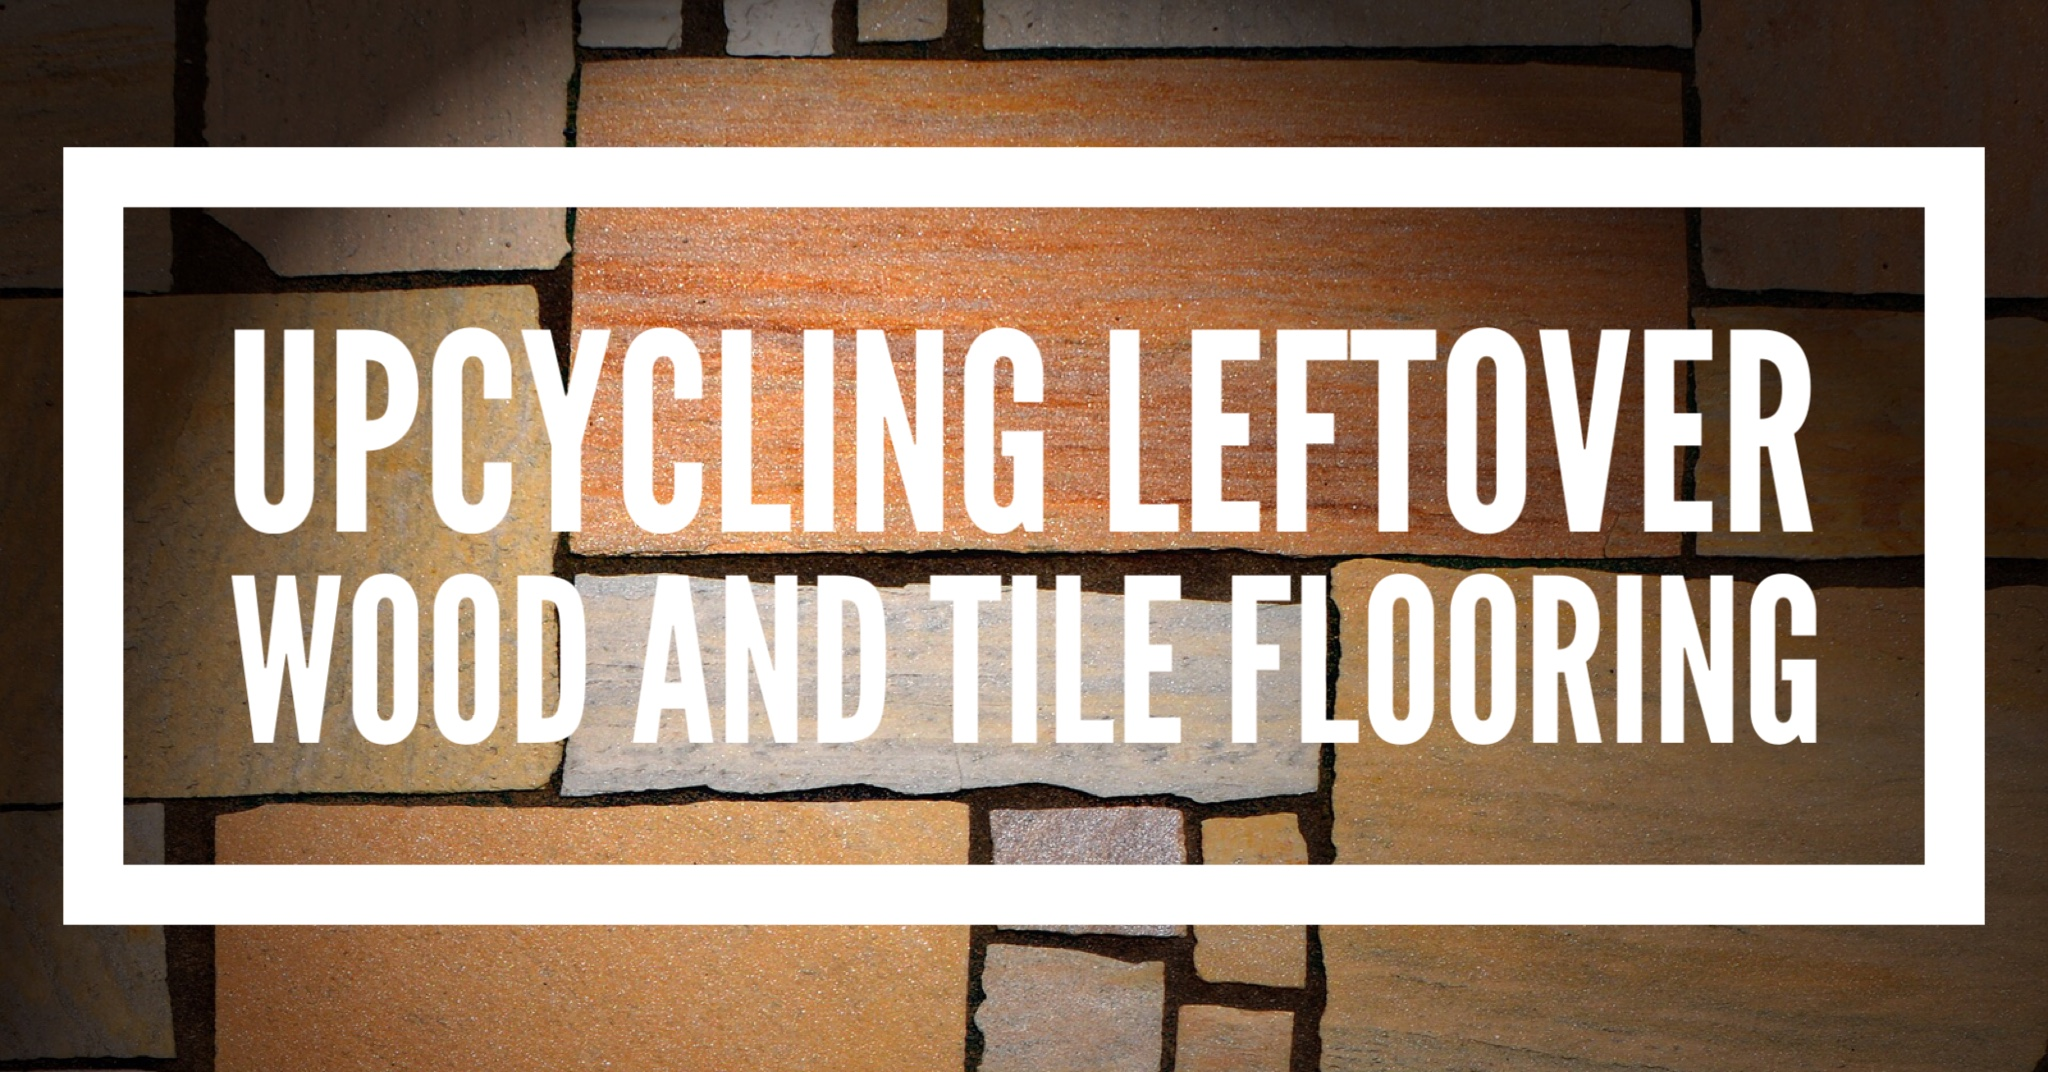 upcycling-leftover-wood-and-tile-flooring